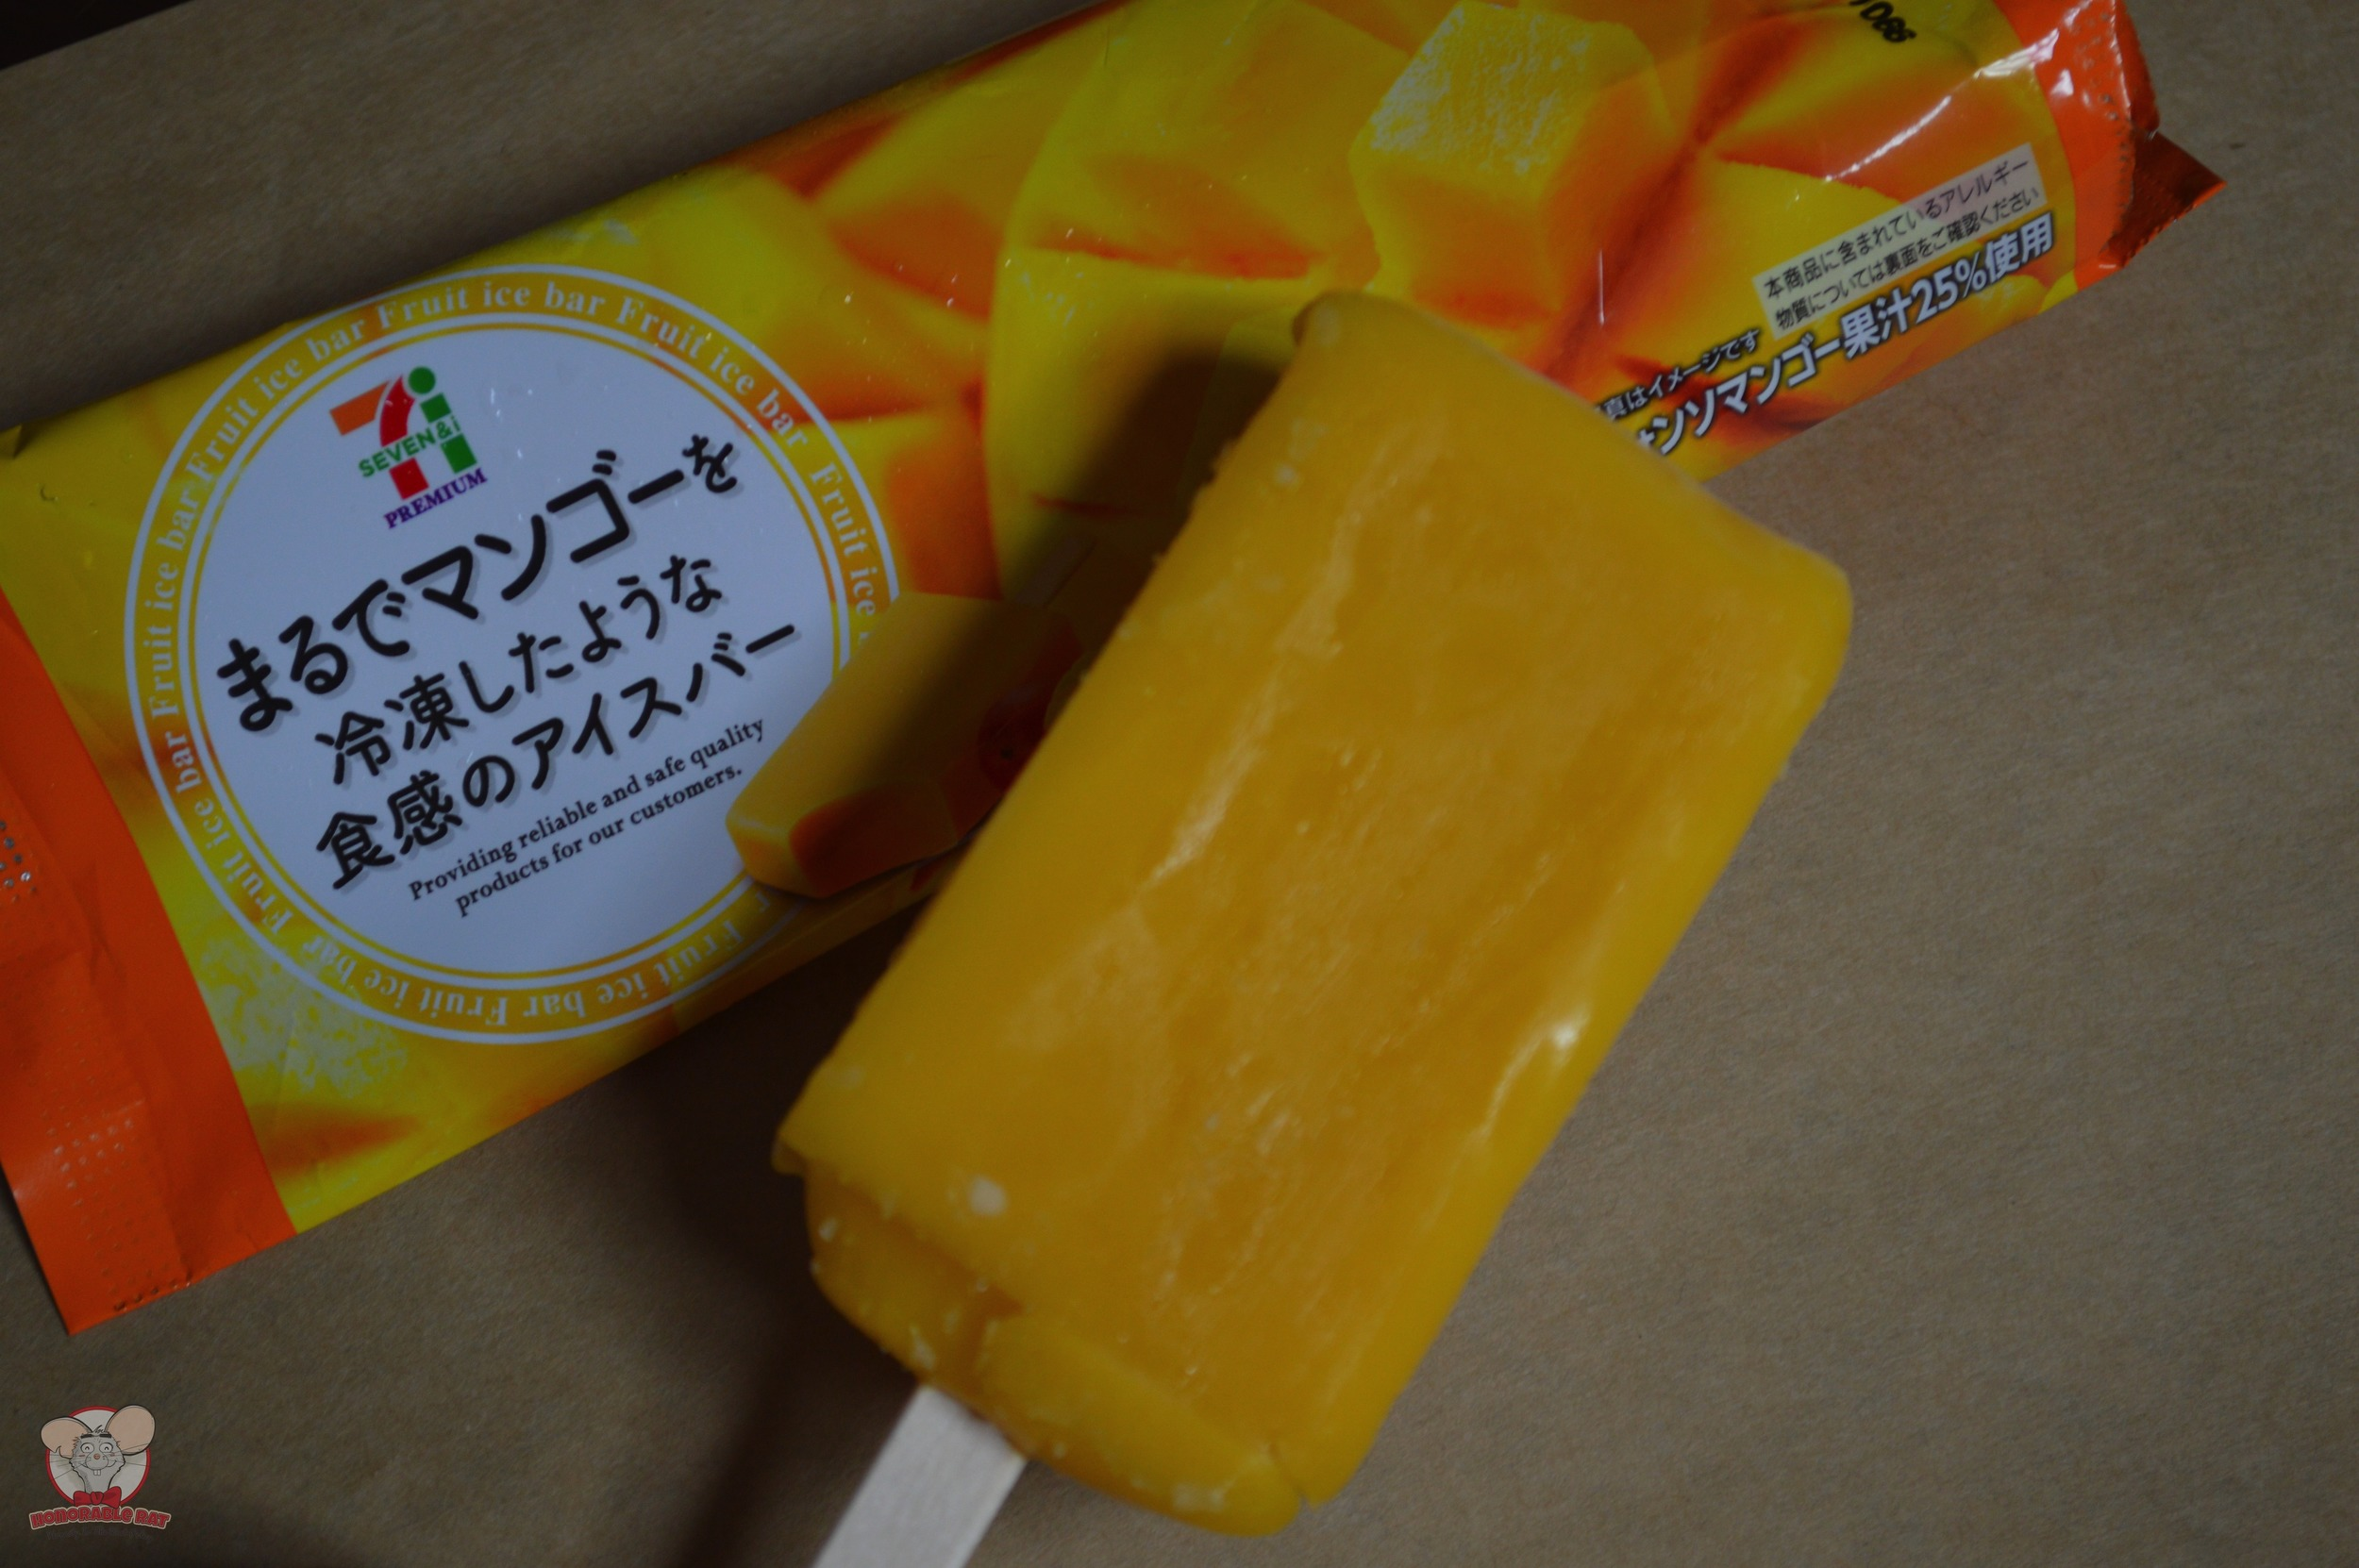 Mango Popsicle from 7-Eleven